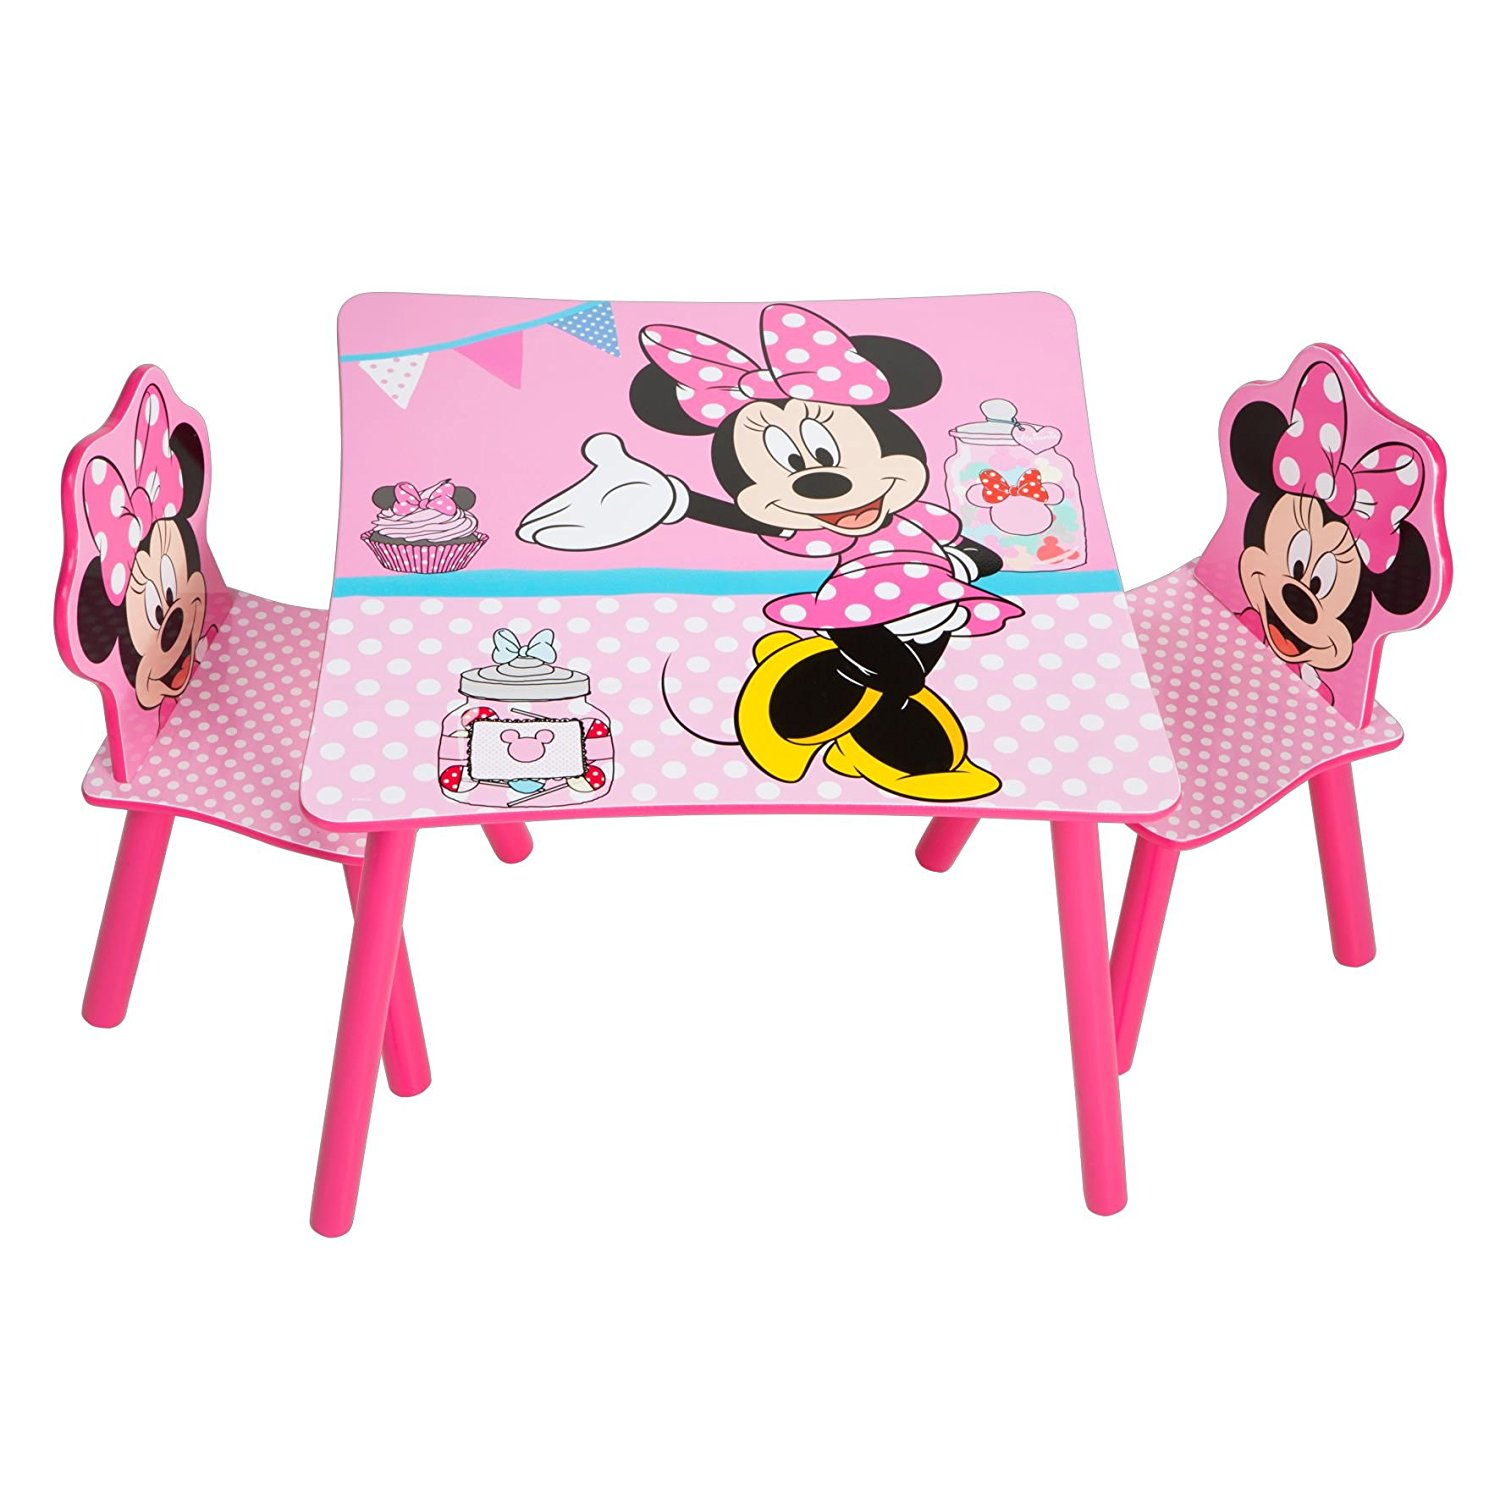 Mesas y sillas para ni as minnie mouse mesas for Muebles disney